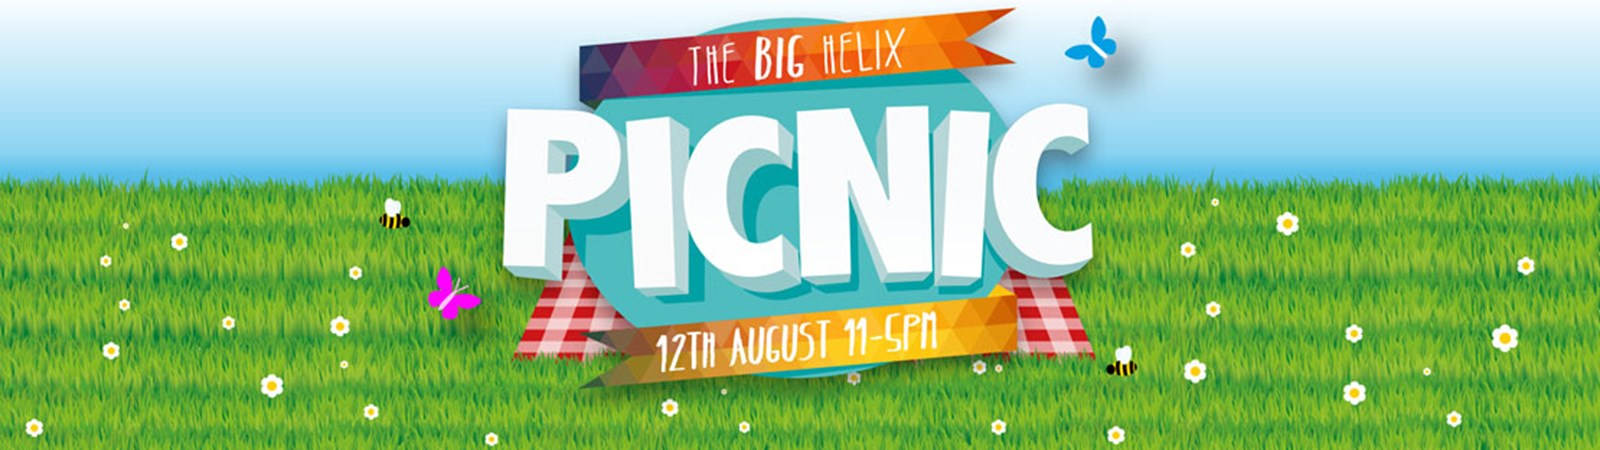 The Big Picnic Helix Park